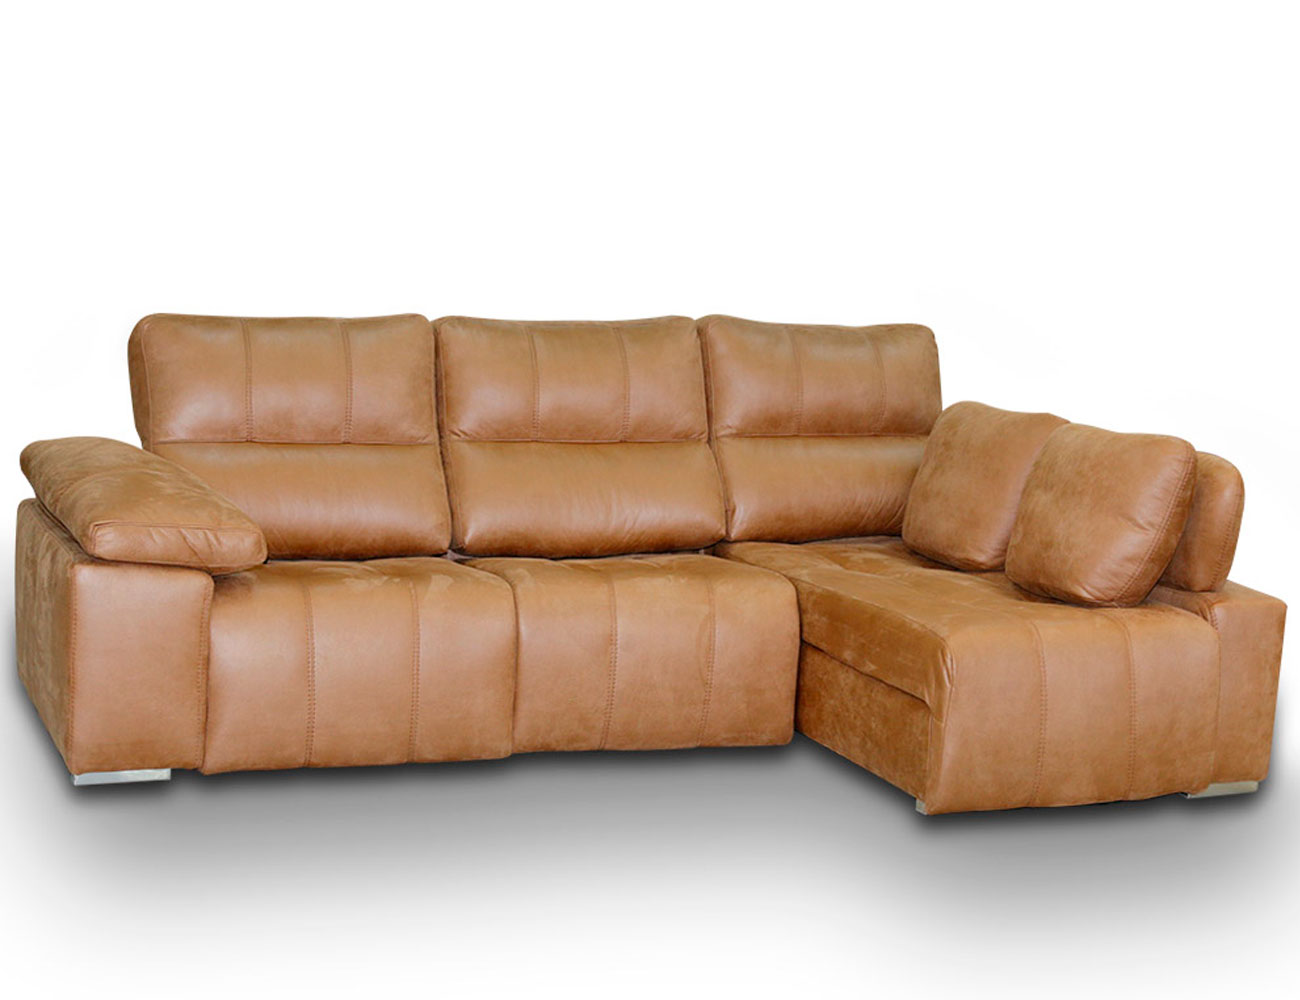 Sofa chaiselongue relax 2 motores anti manchas26